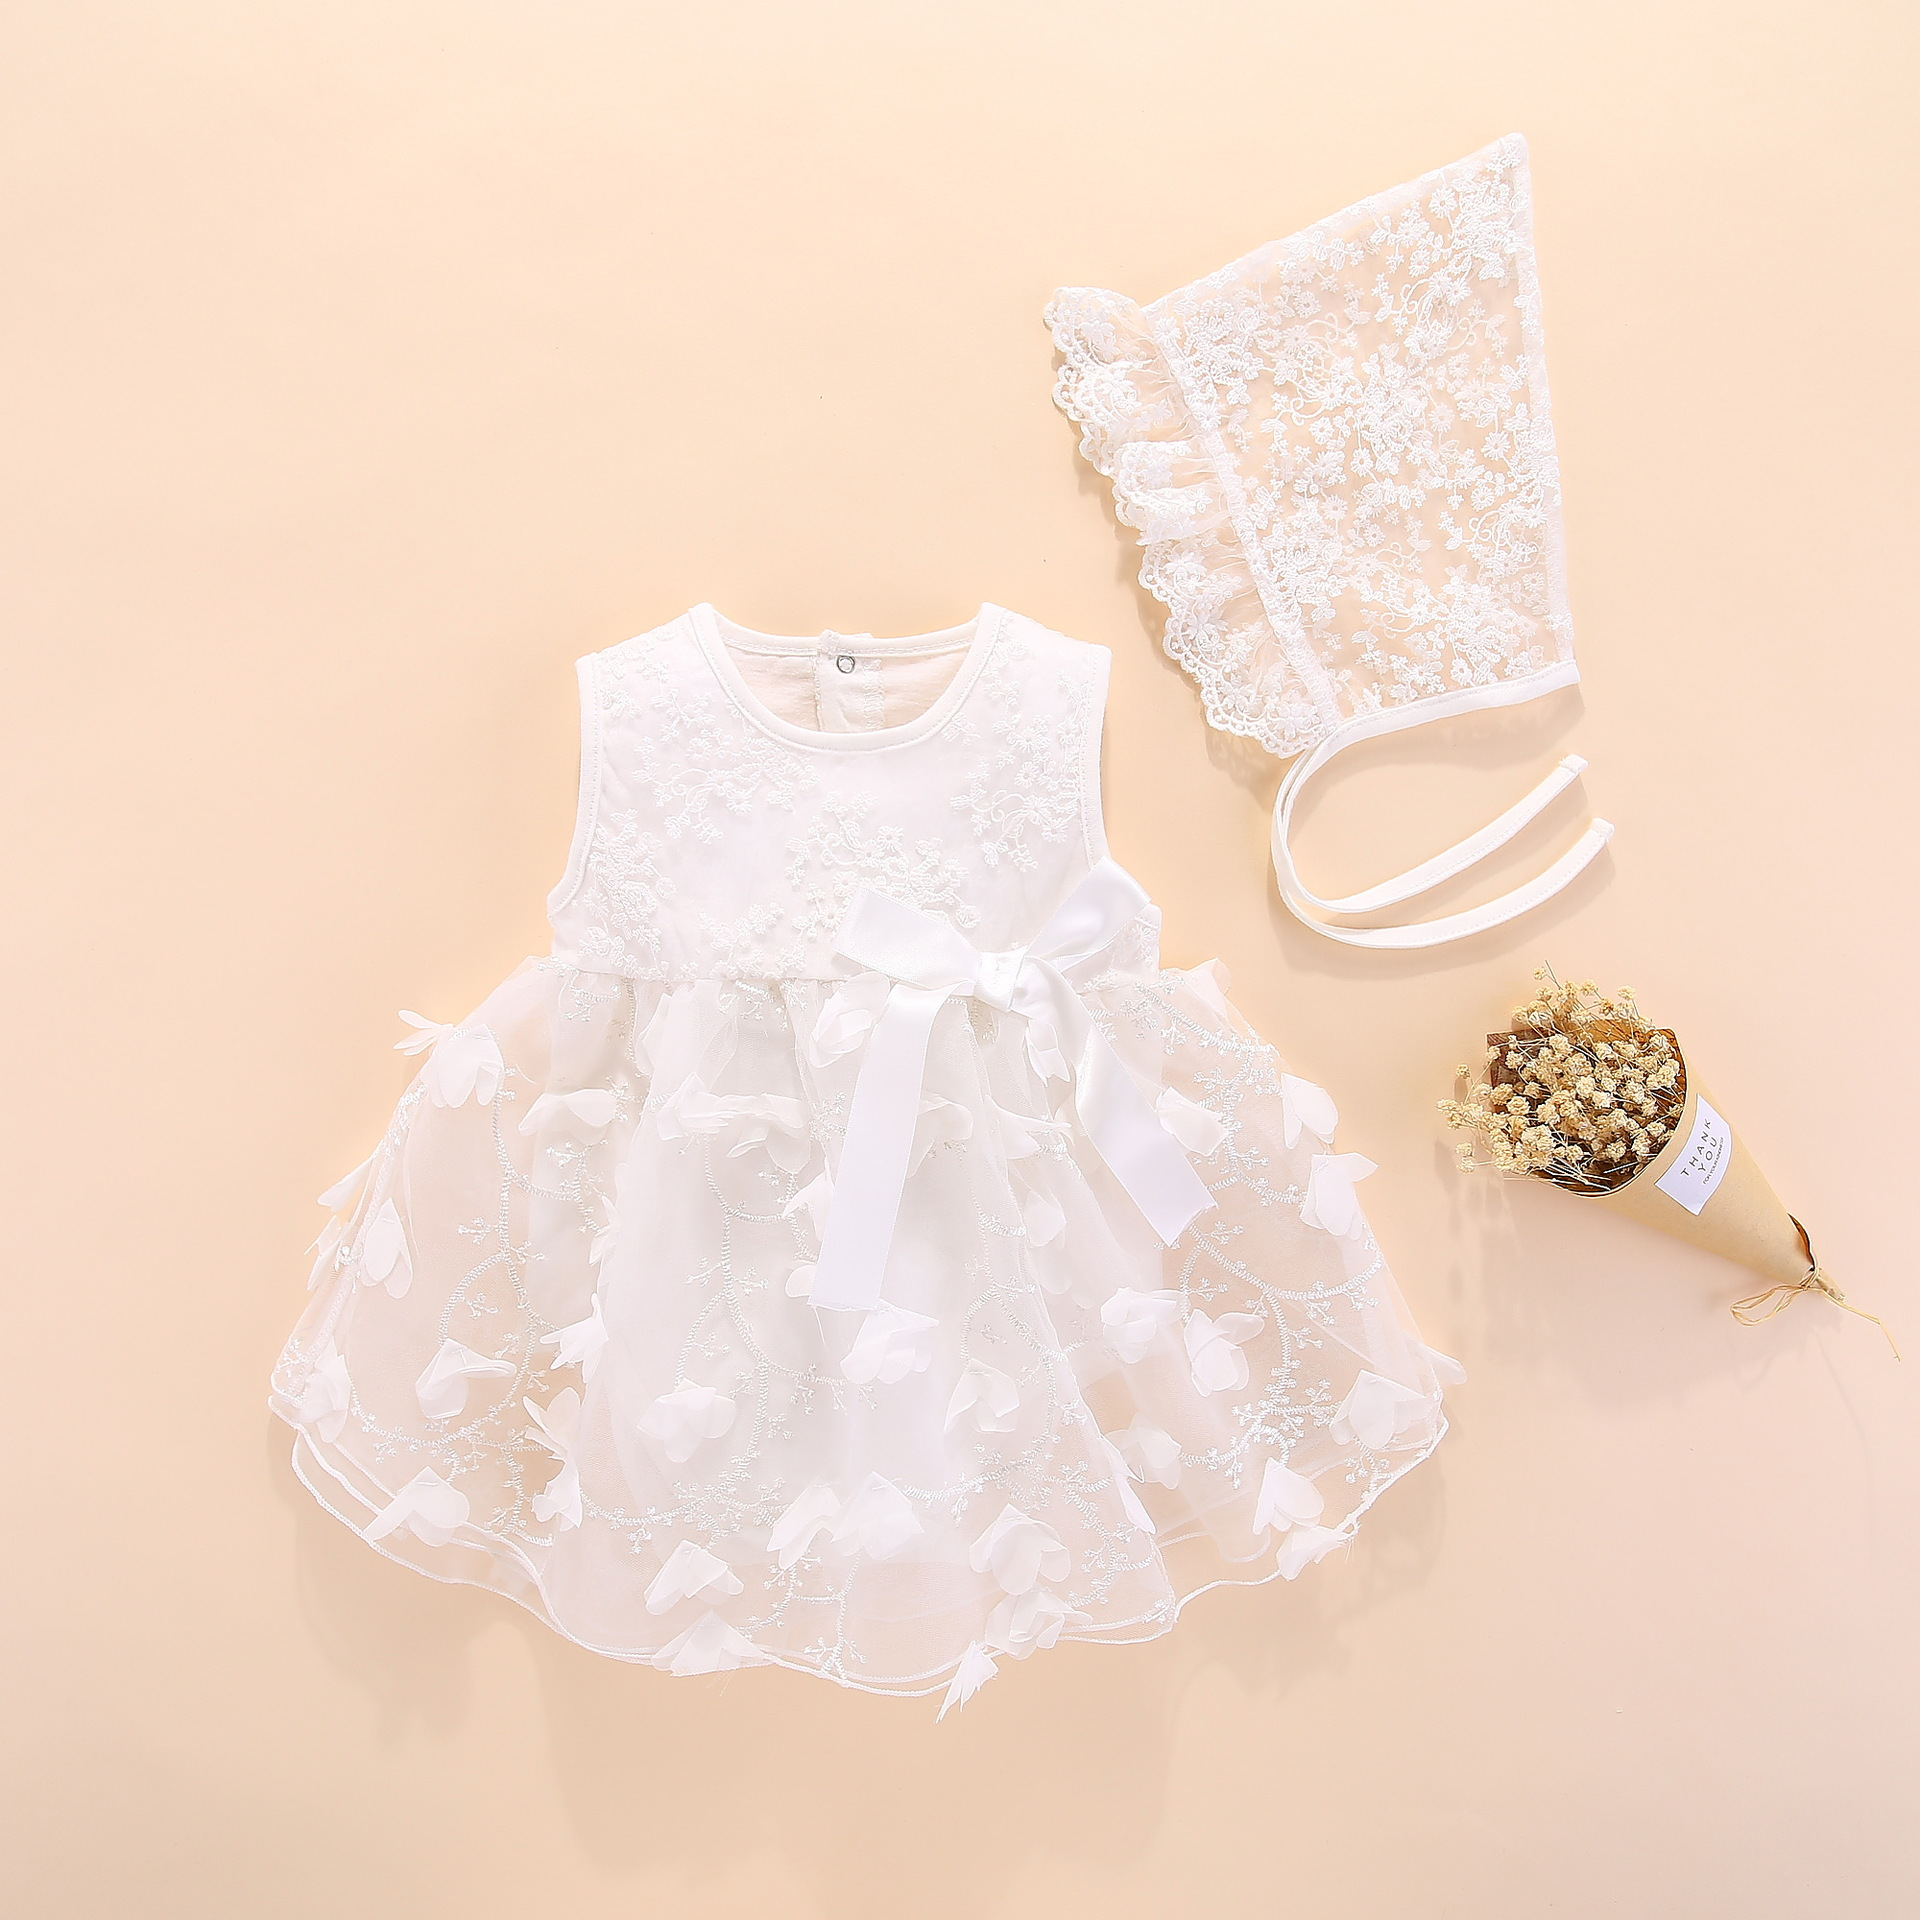 newborn baby girl dresses clothes summer with flower 0 3 6 month baby girl dress for party and wedding princess style clothes цена